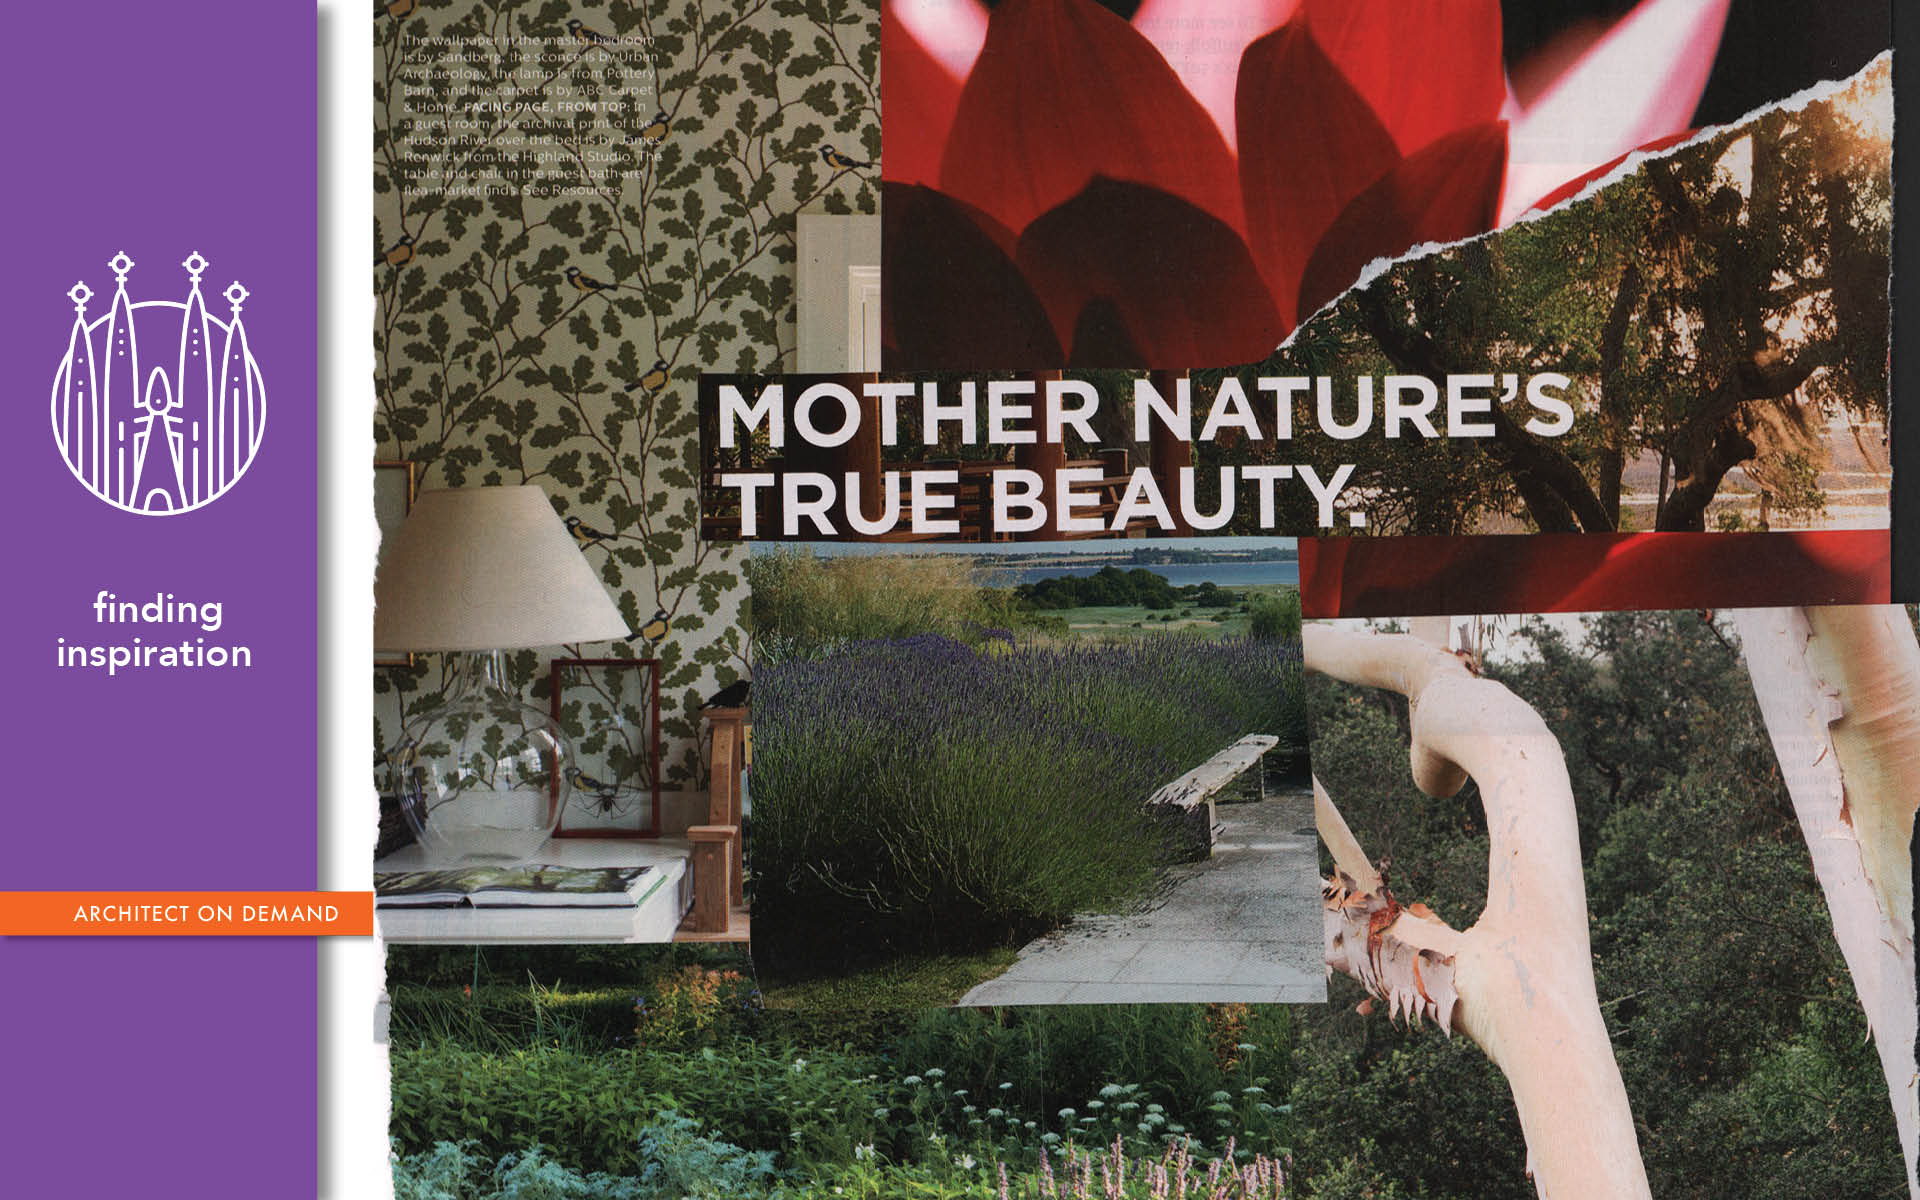 nature-inspired-design, architect on demand, advice without strings